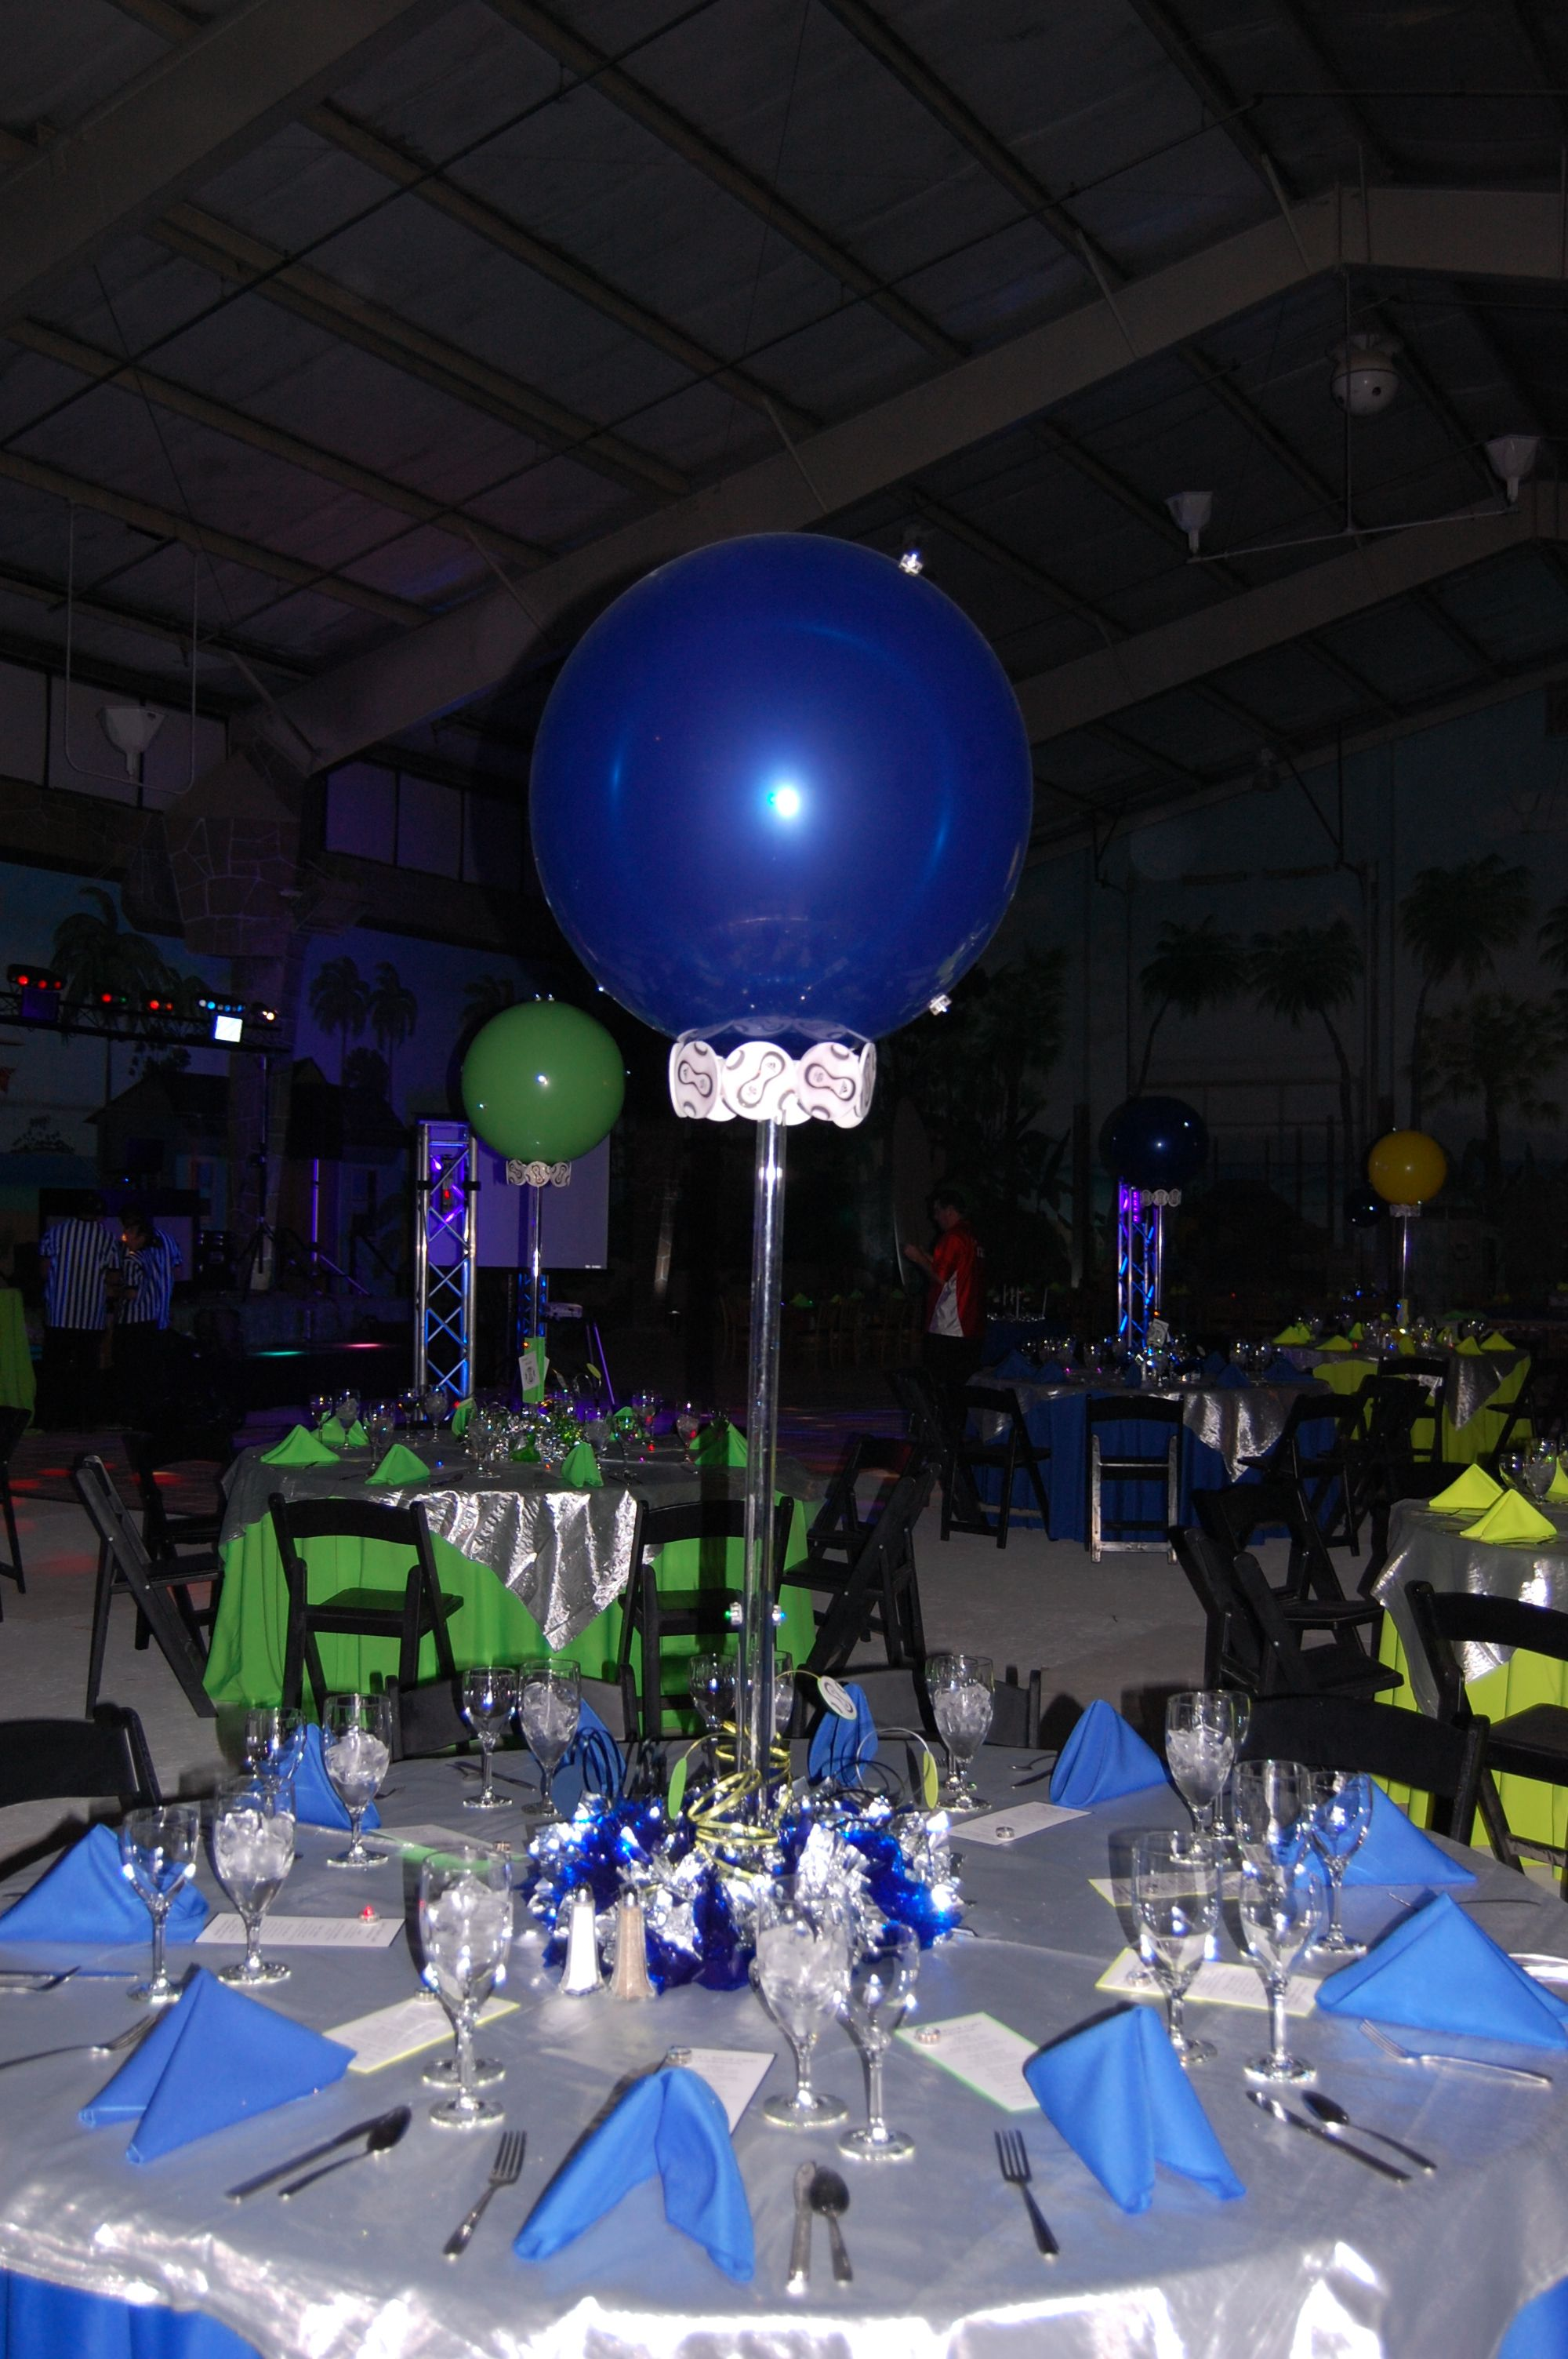 Bar Mitzvah party with a theme of black lights and sports.  This was fun to design.